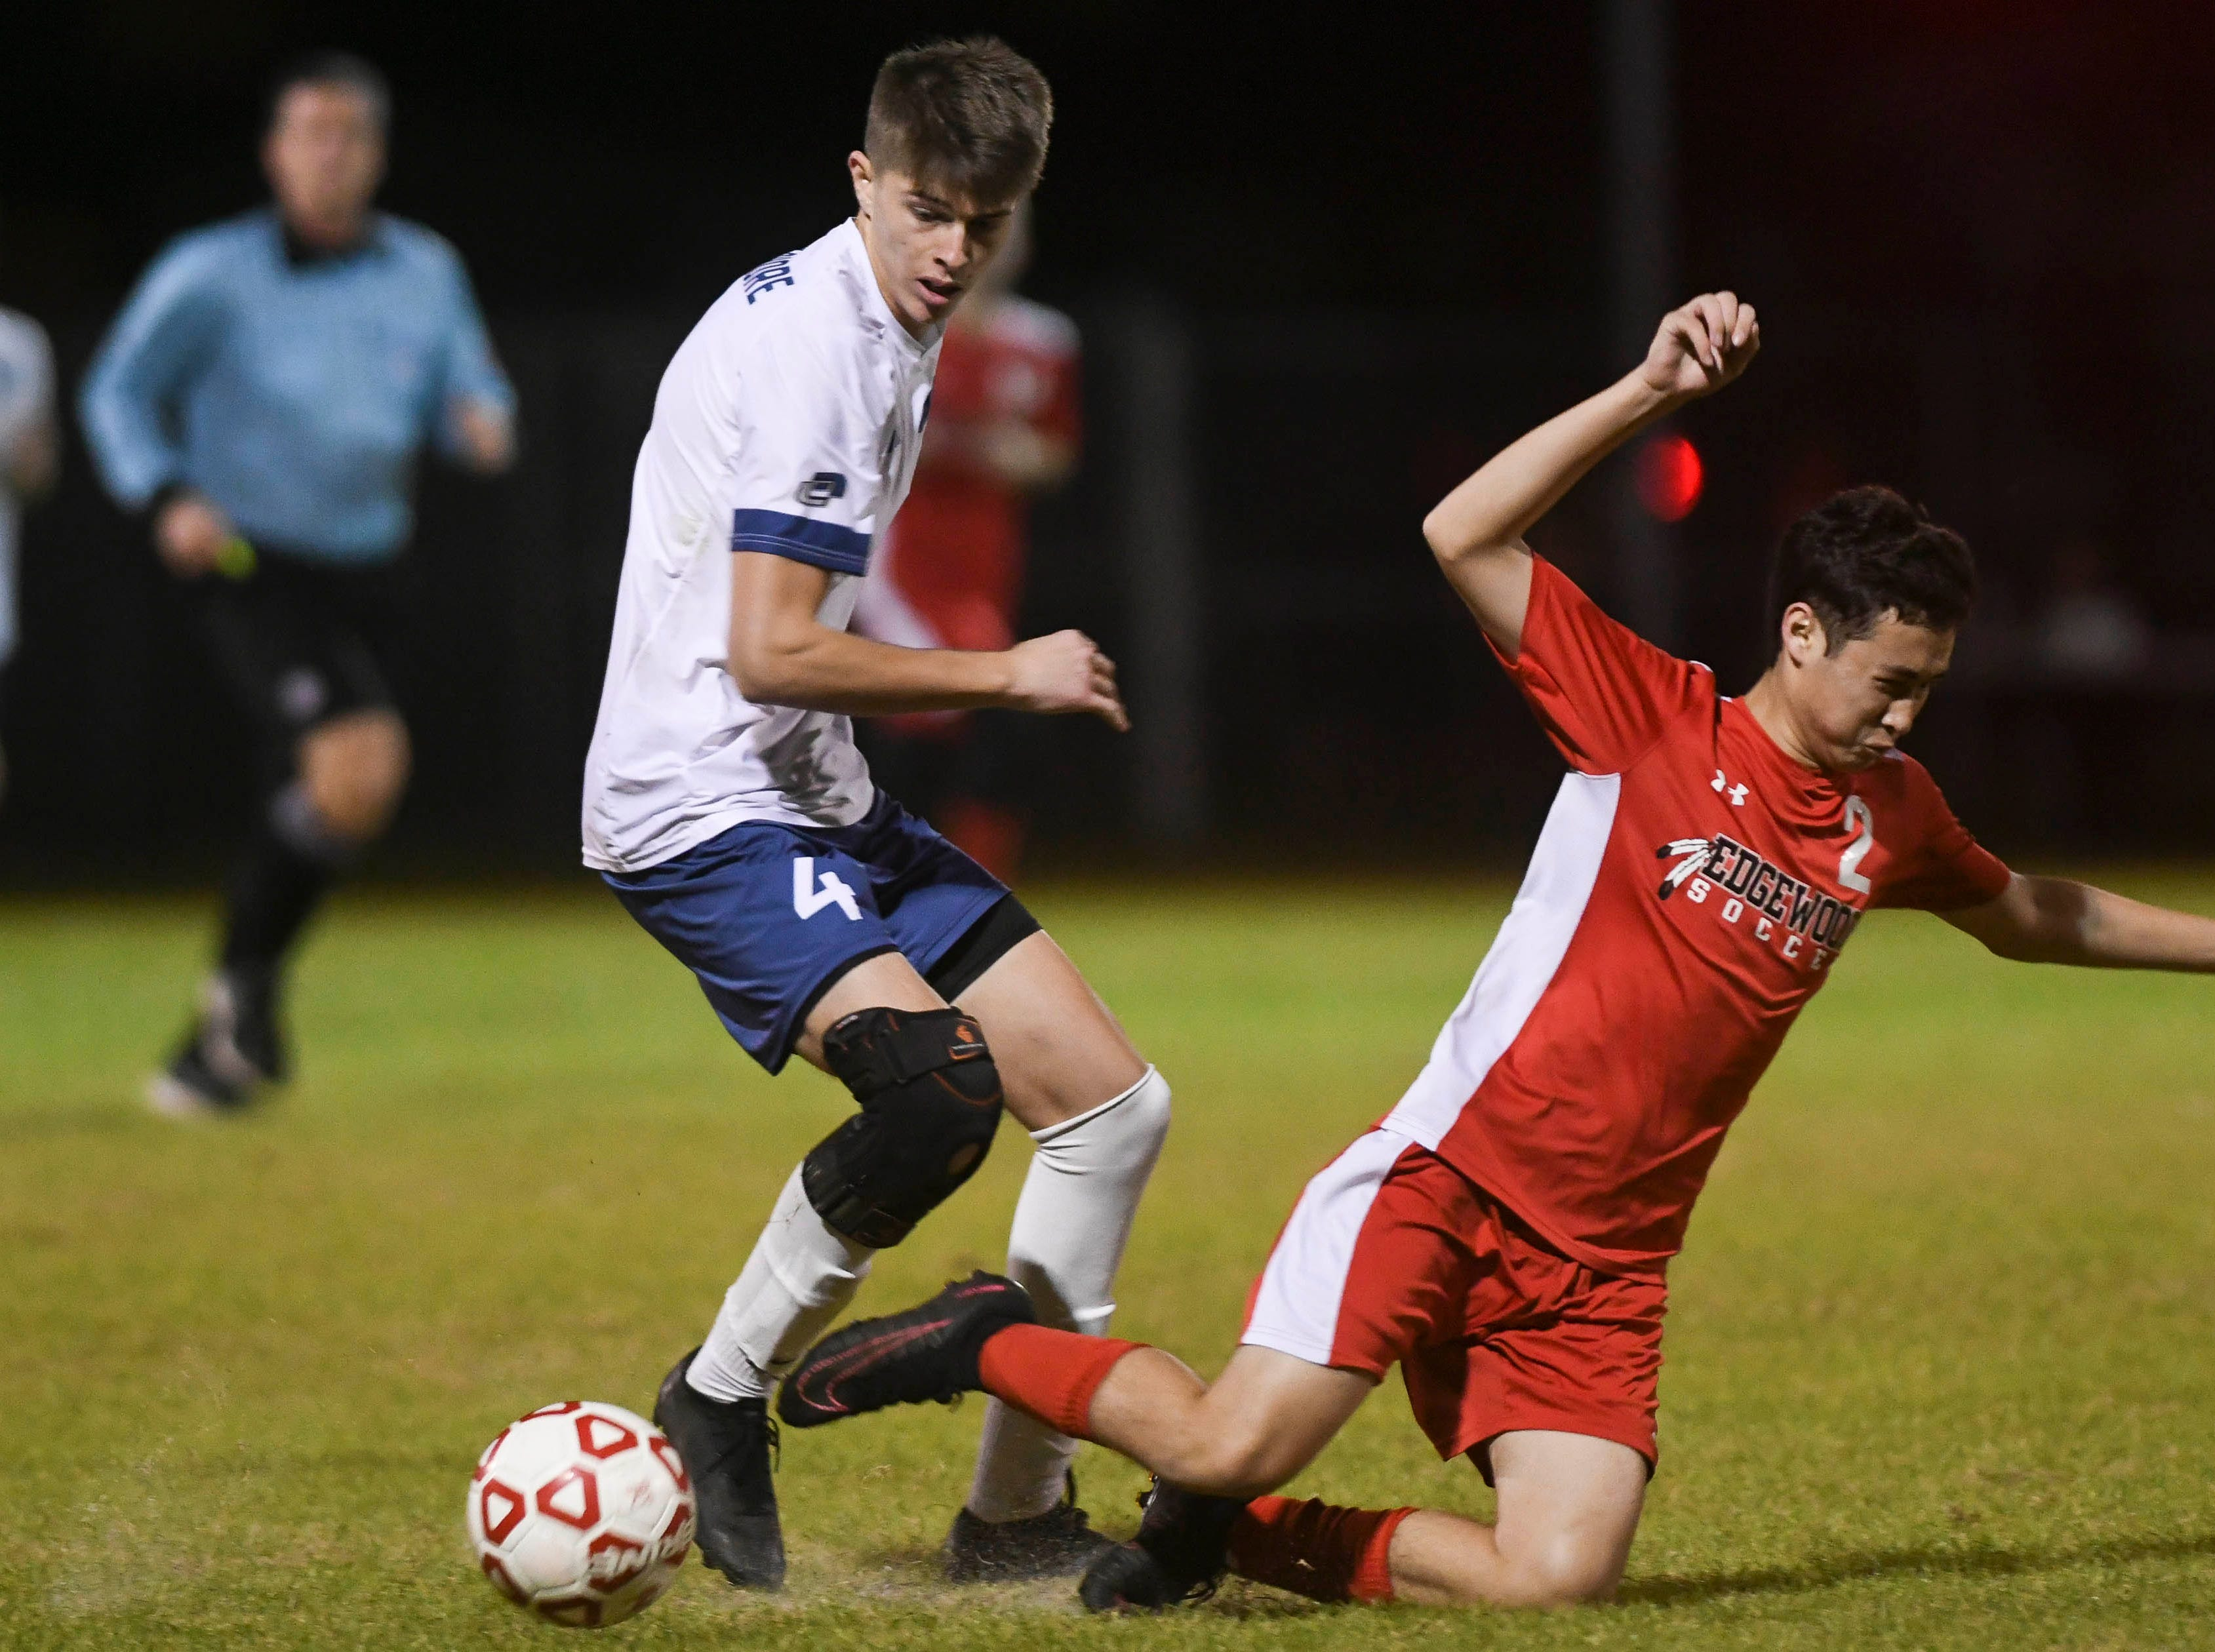 West Shore's Case Hester trips Ethan Decesare of Edgewood during Thursday's Cape Coast Conference championship game.